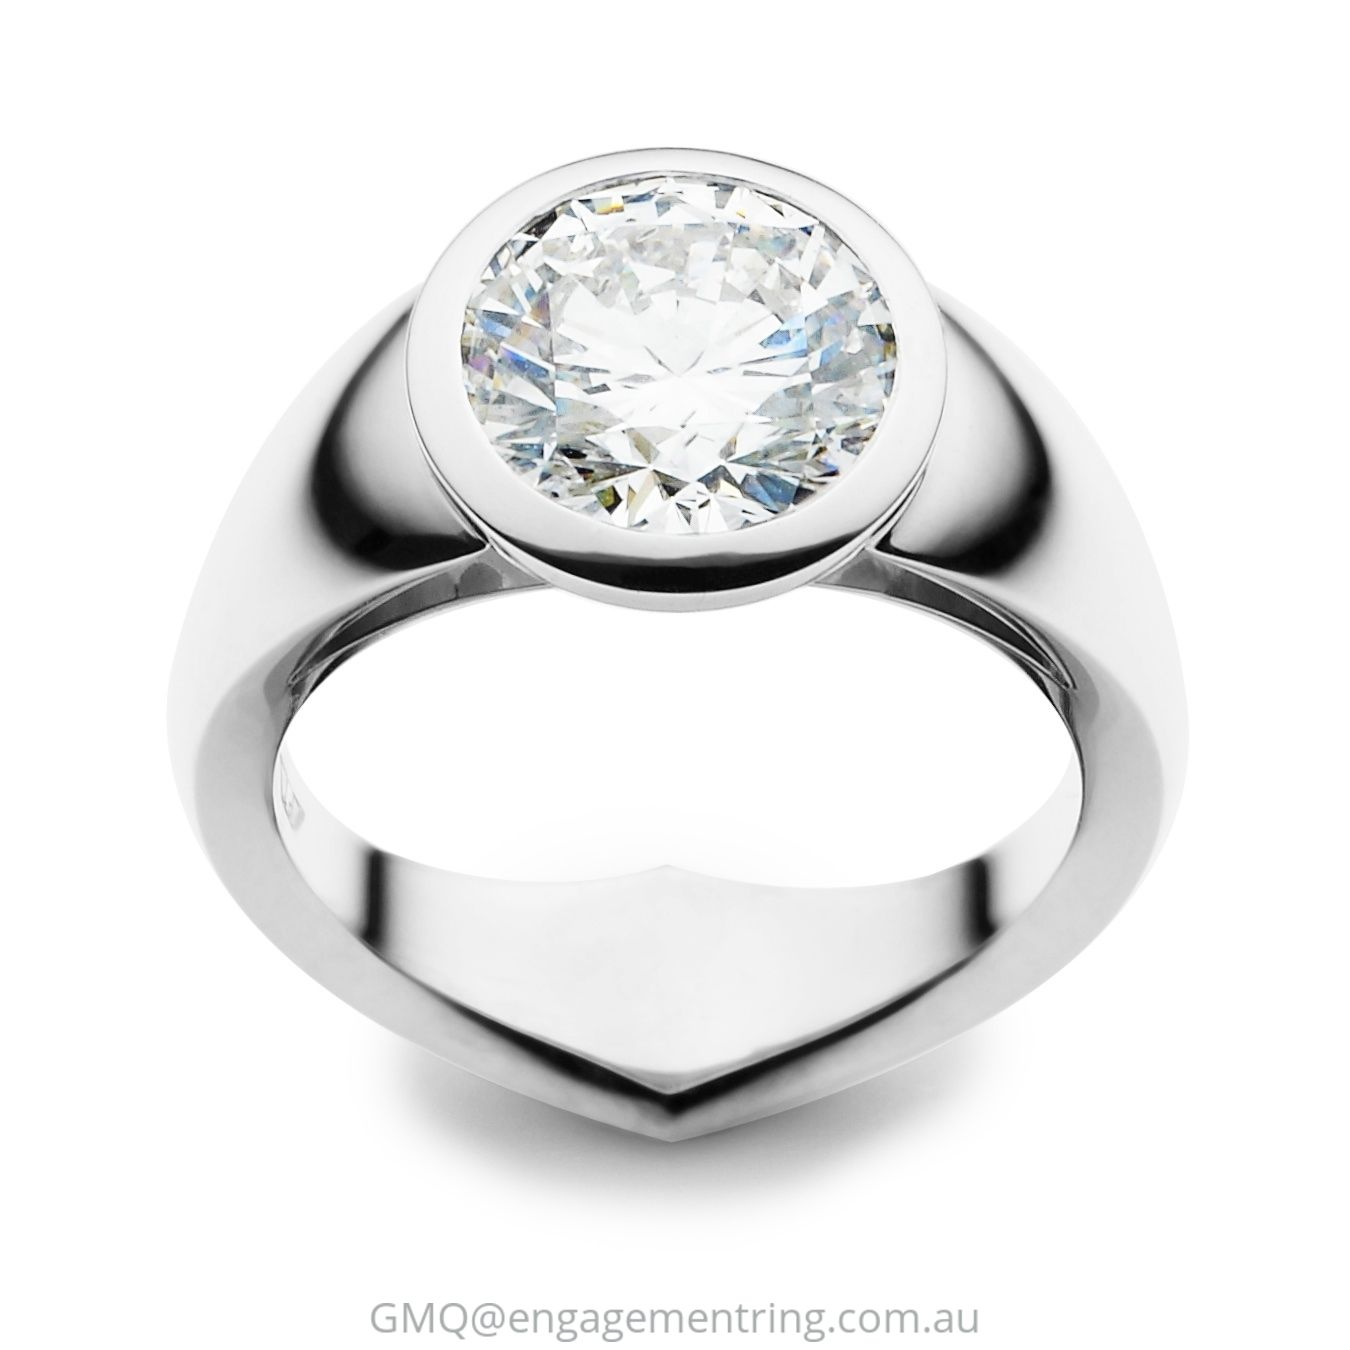 jewellery with rings modern contemporary classic design single diamond engagement ring